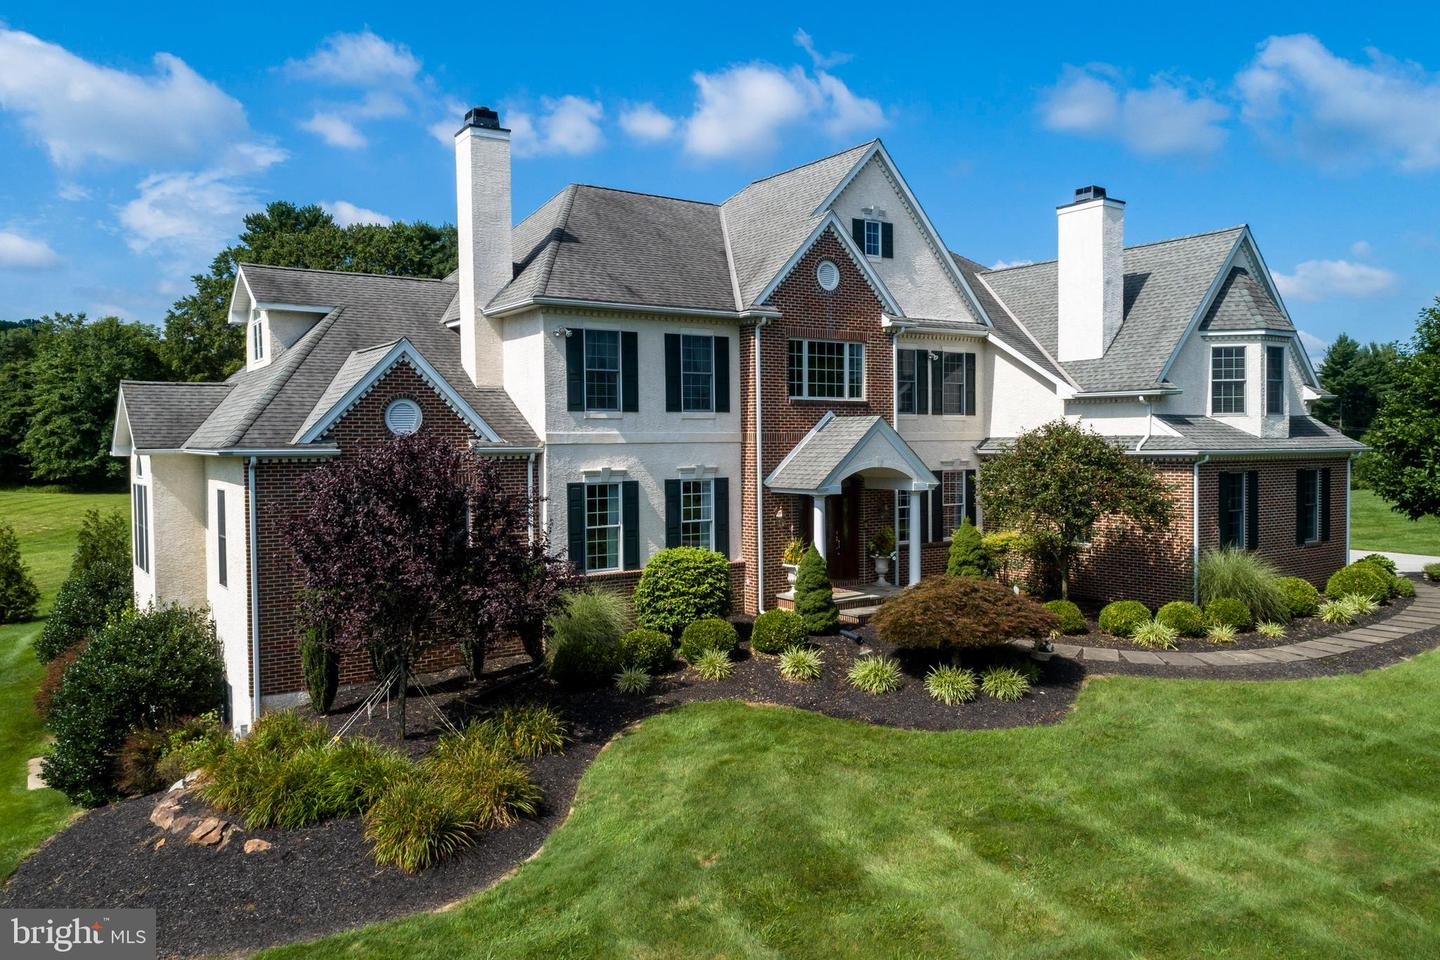 46a Thornbird Way Newtown Square, PA 19073